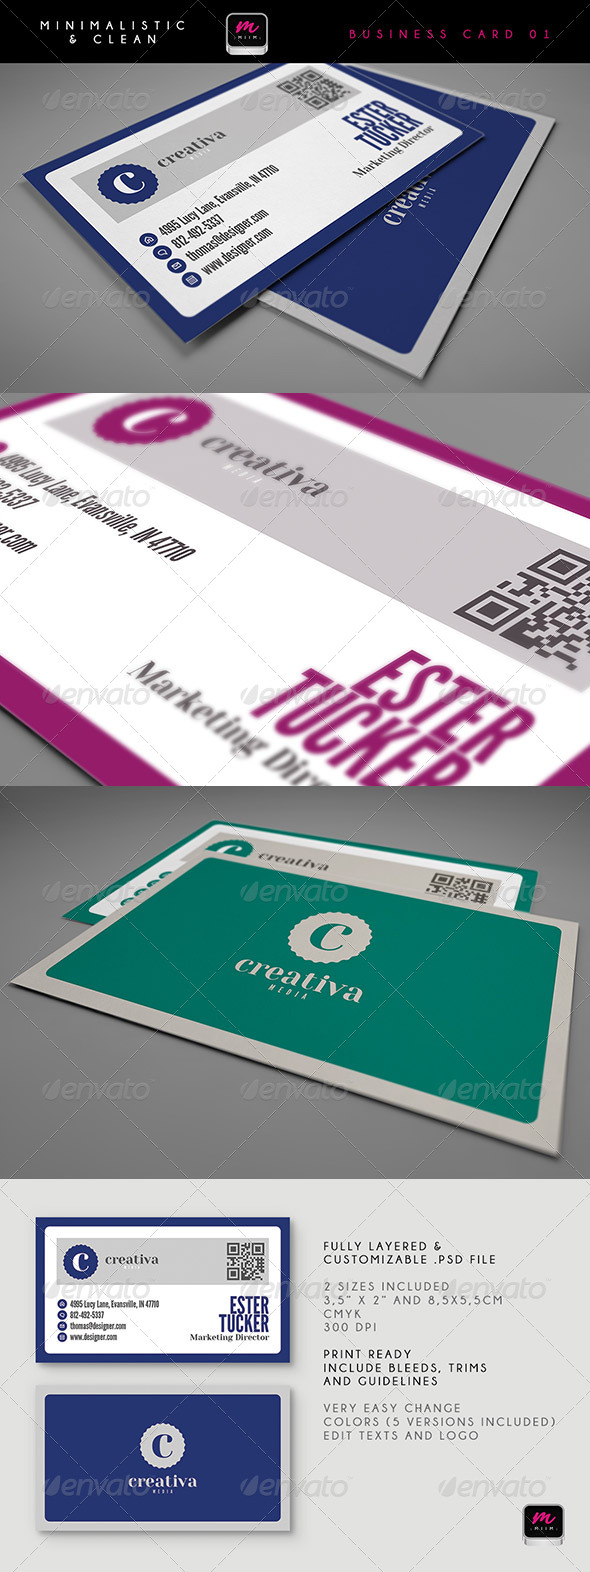 Clean Business Card Template 02 - Creative Business Cards